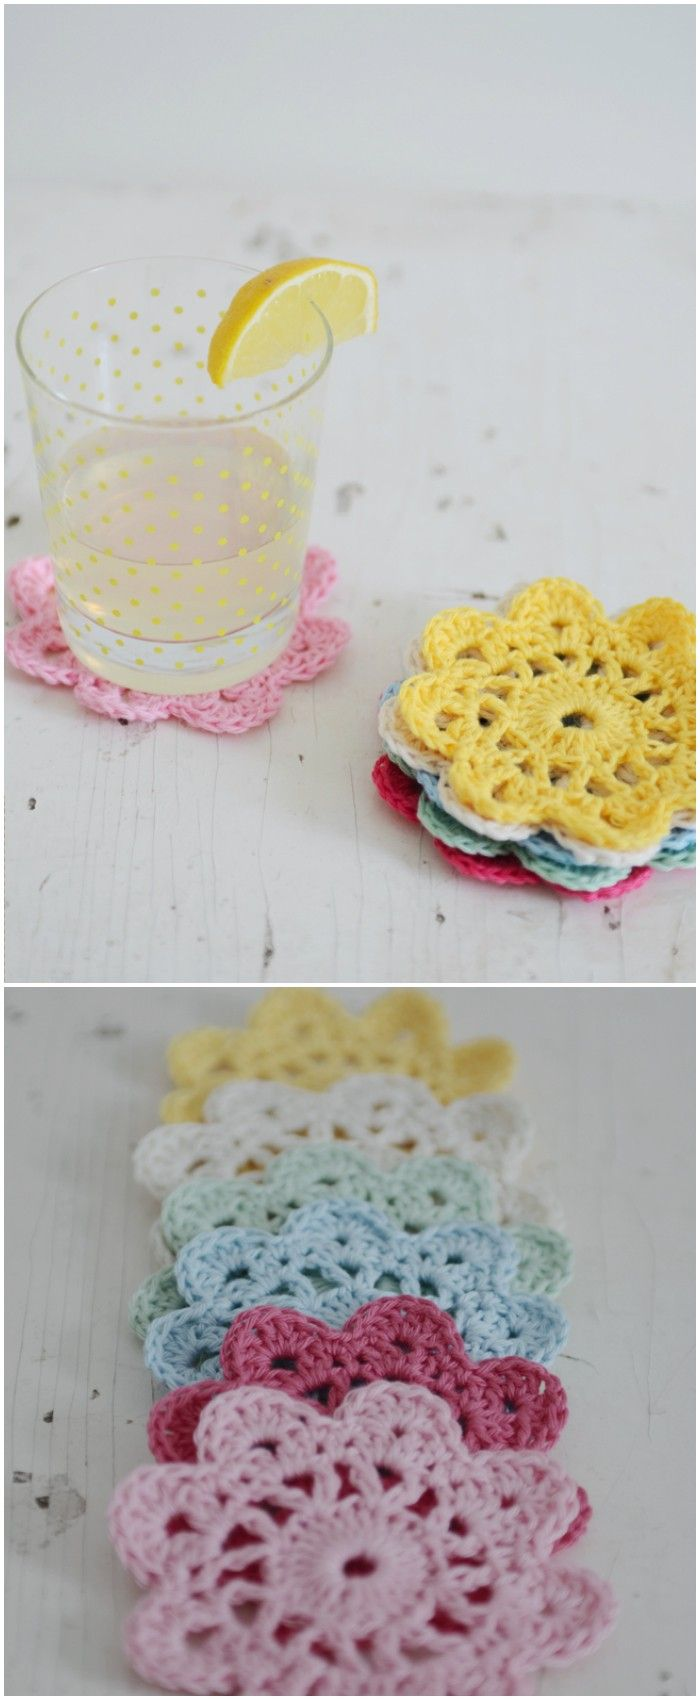 Best 25 crochet coaster ideas on pinterest crochet coaster best 25 crochet coaster ideas on pinterest crochet coaster pattern free crochet coaster pattern and celtic now bankloansurffo Choice Image